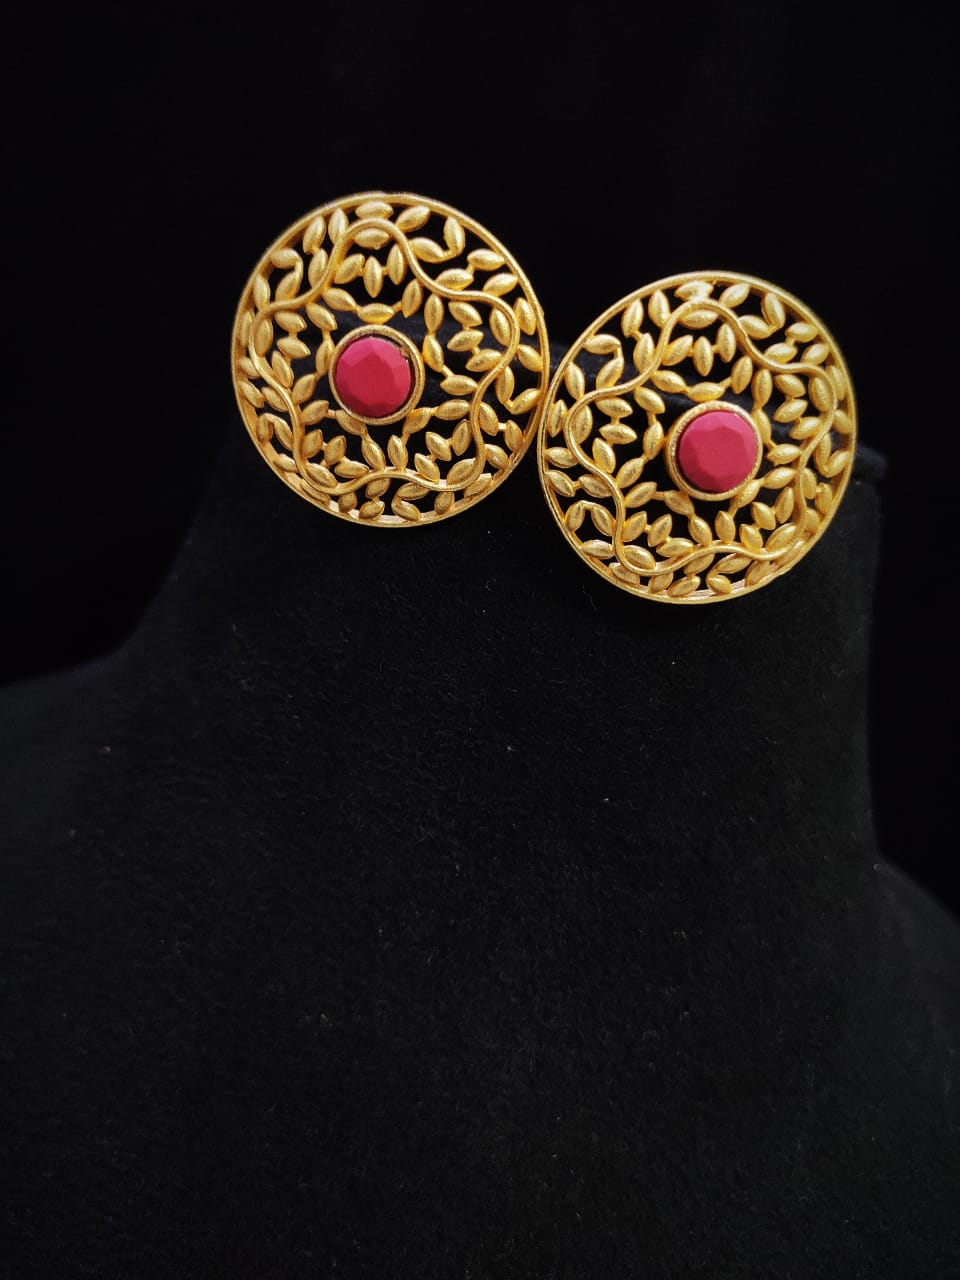 Awesome  Matt Golden Stone Studd Earrings